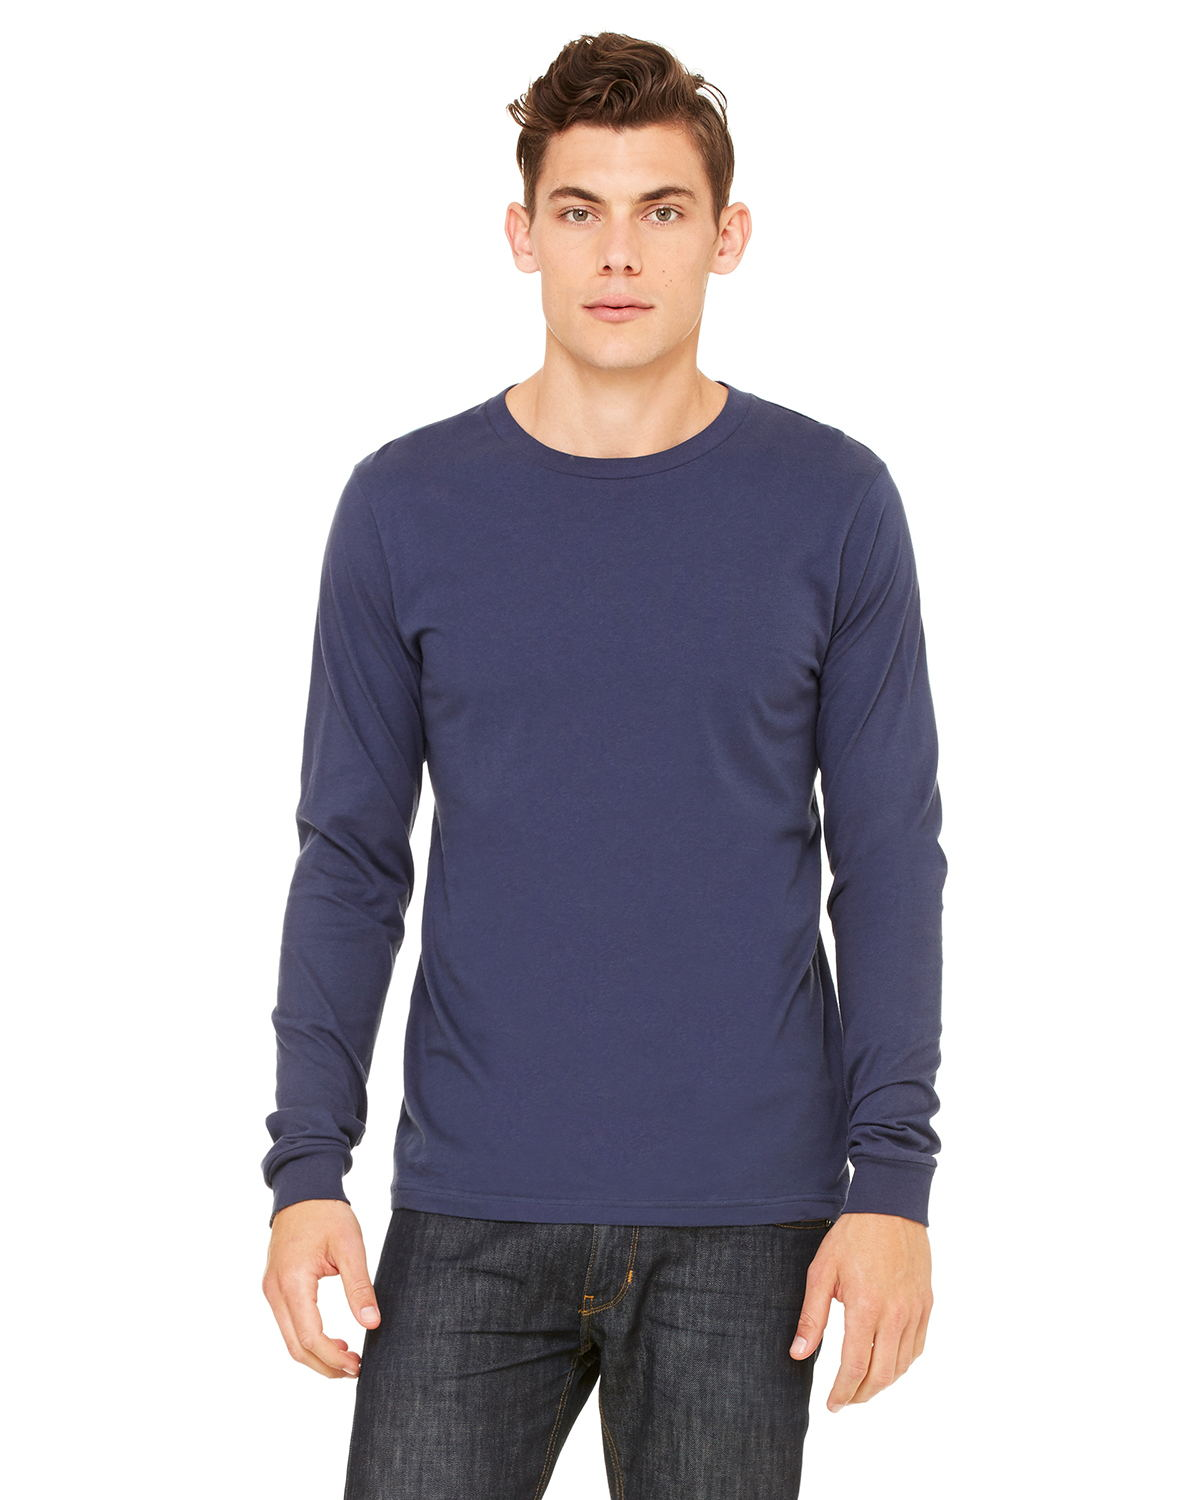 Bella + Canvas - 3501U Men's Made in the USA Jersey Long-Sleeve T-Shirt